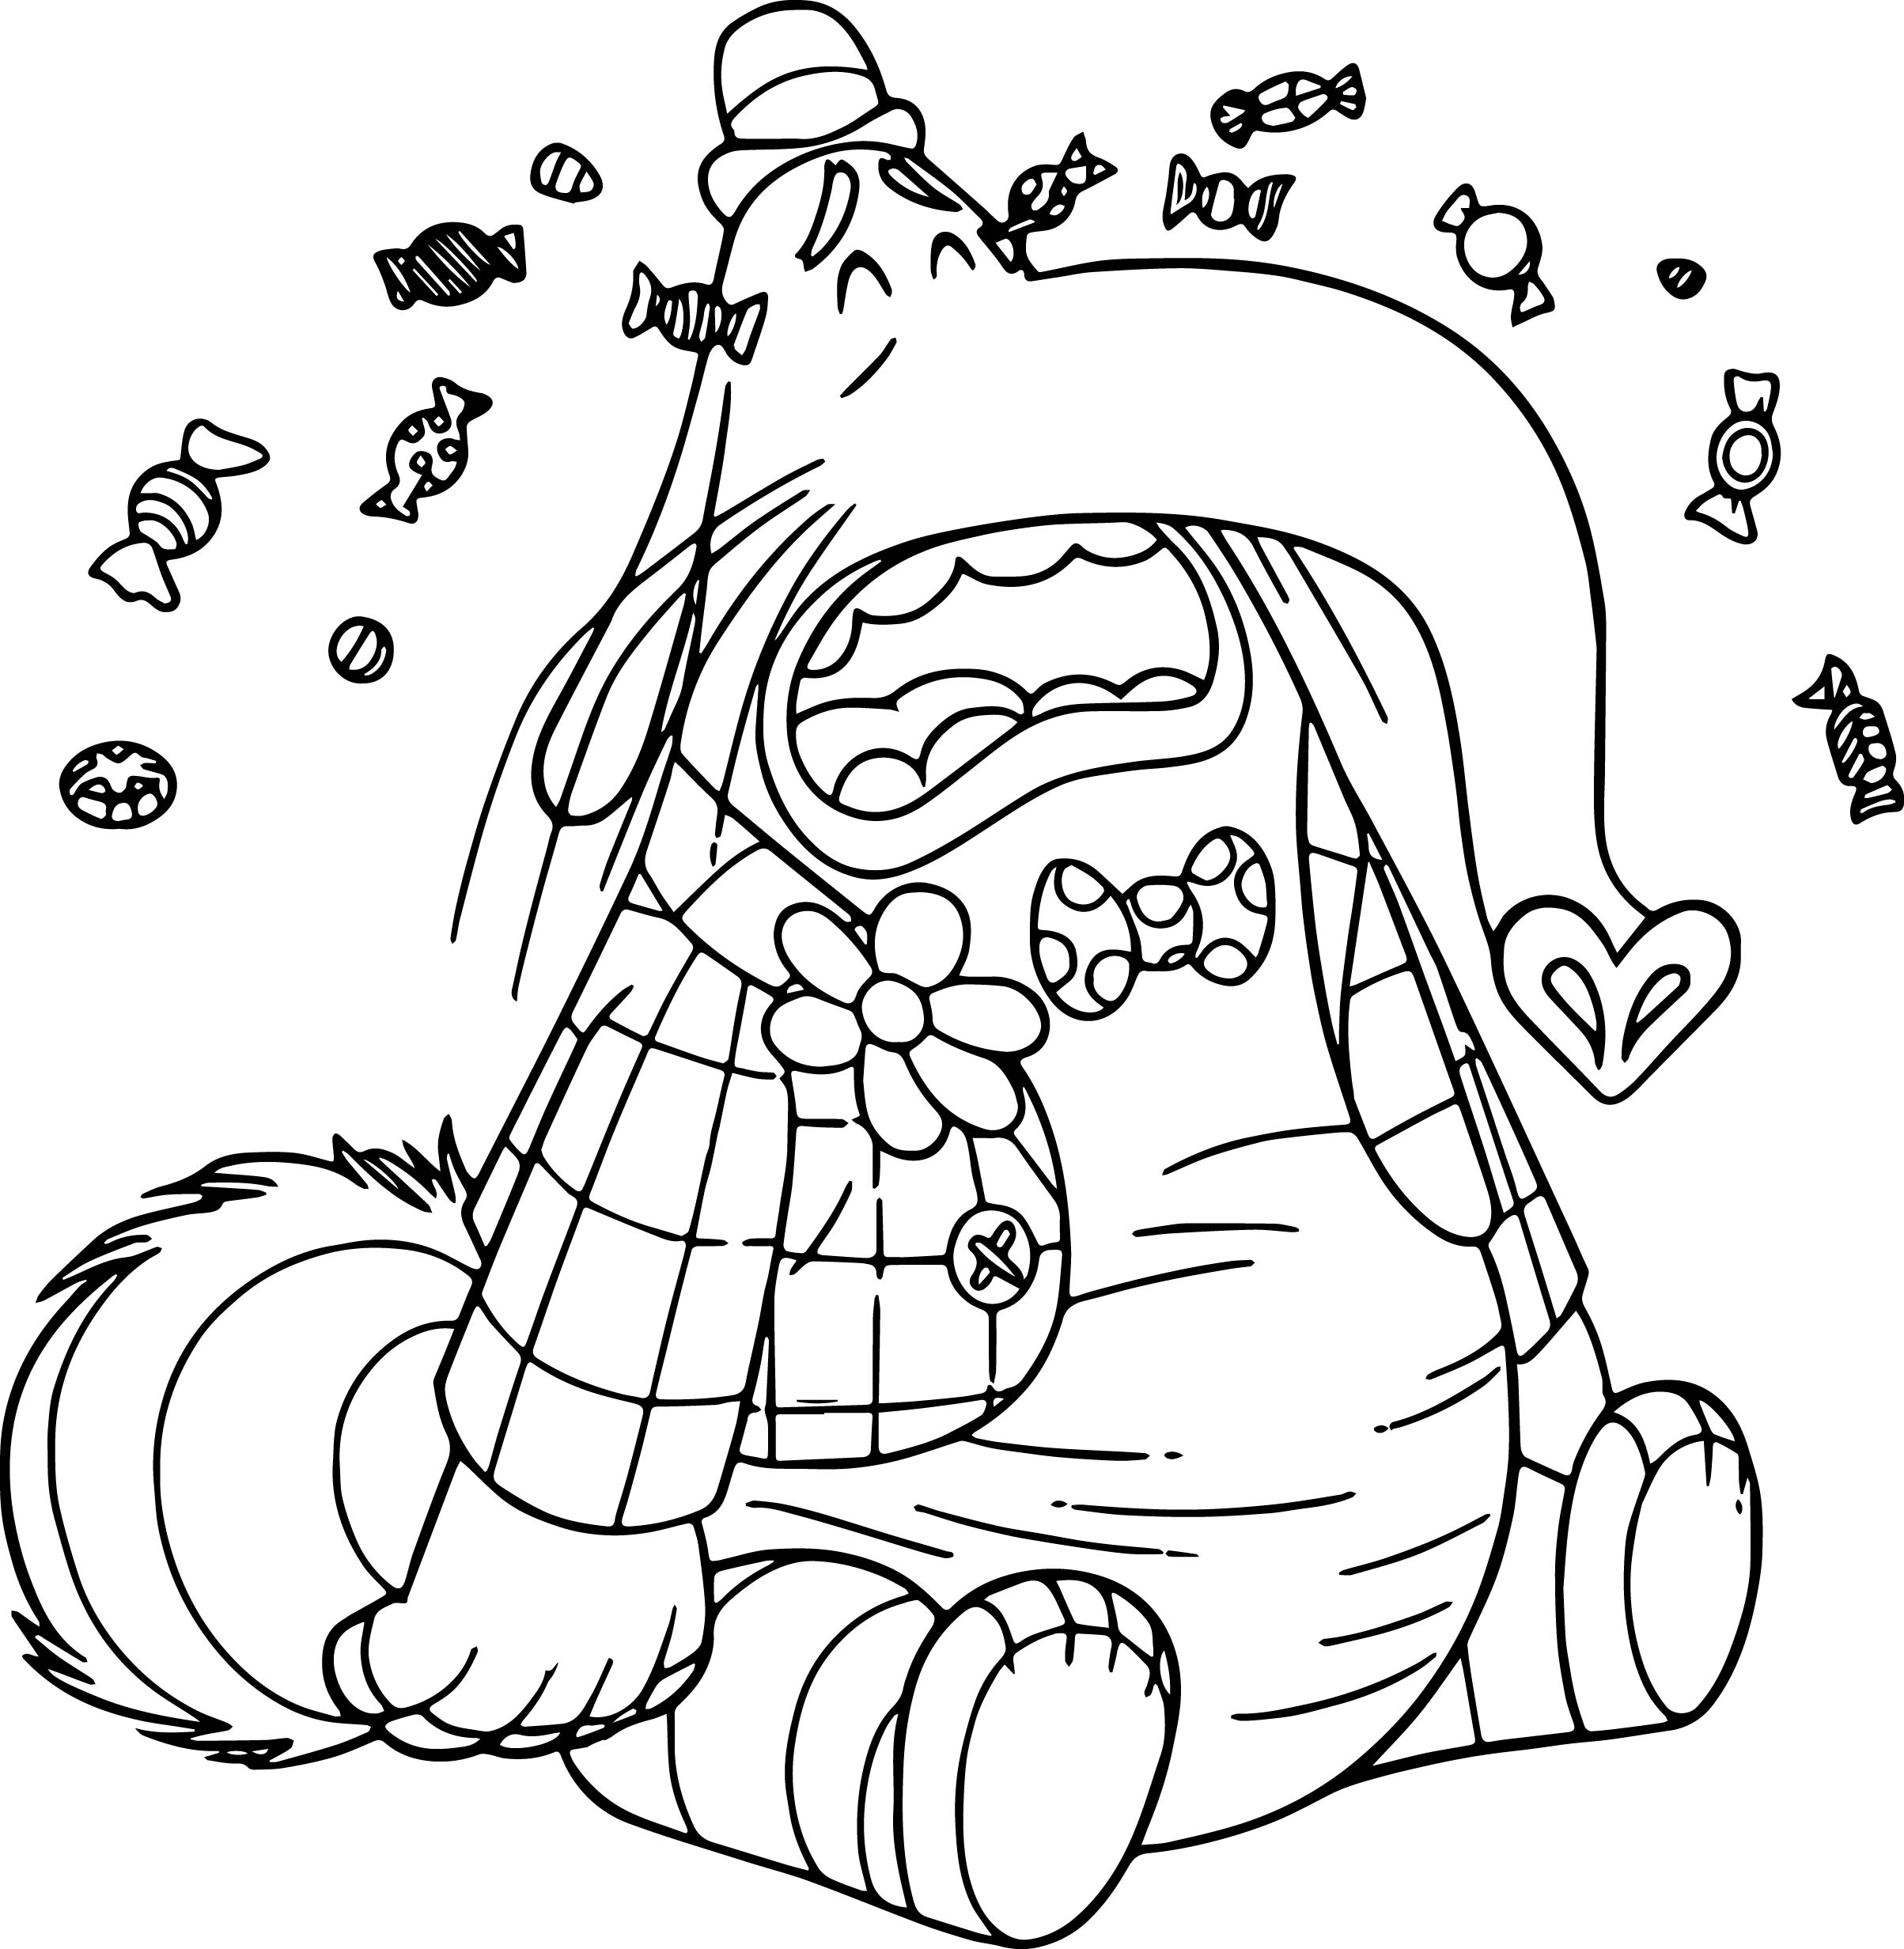 Bingbong Cry Coloring Pages